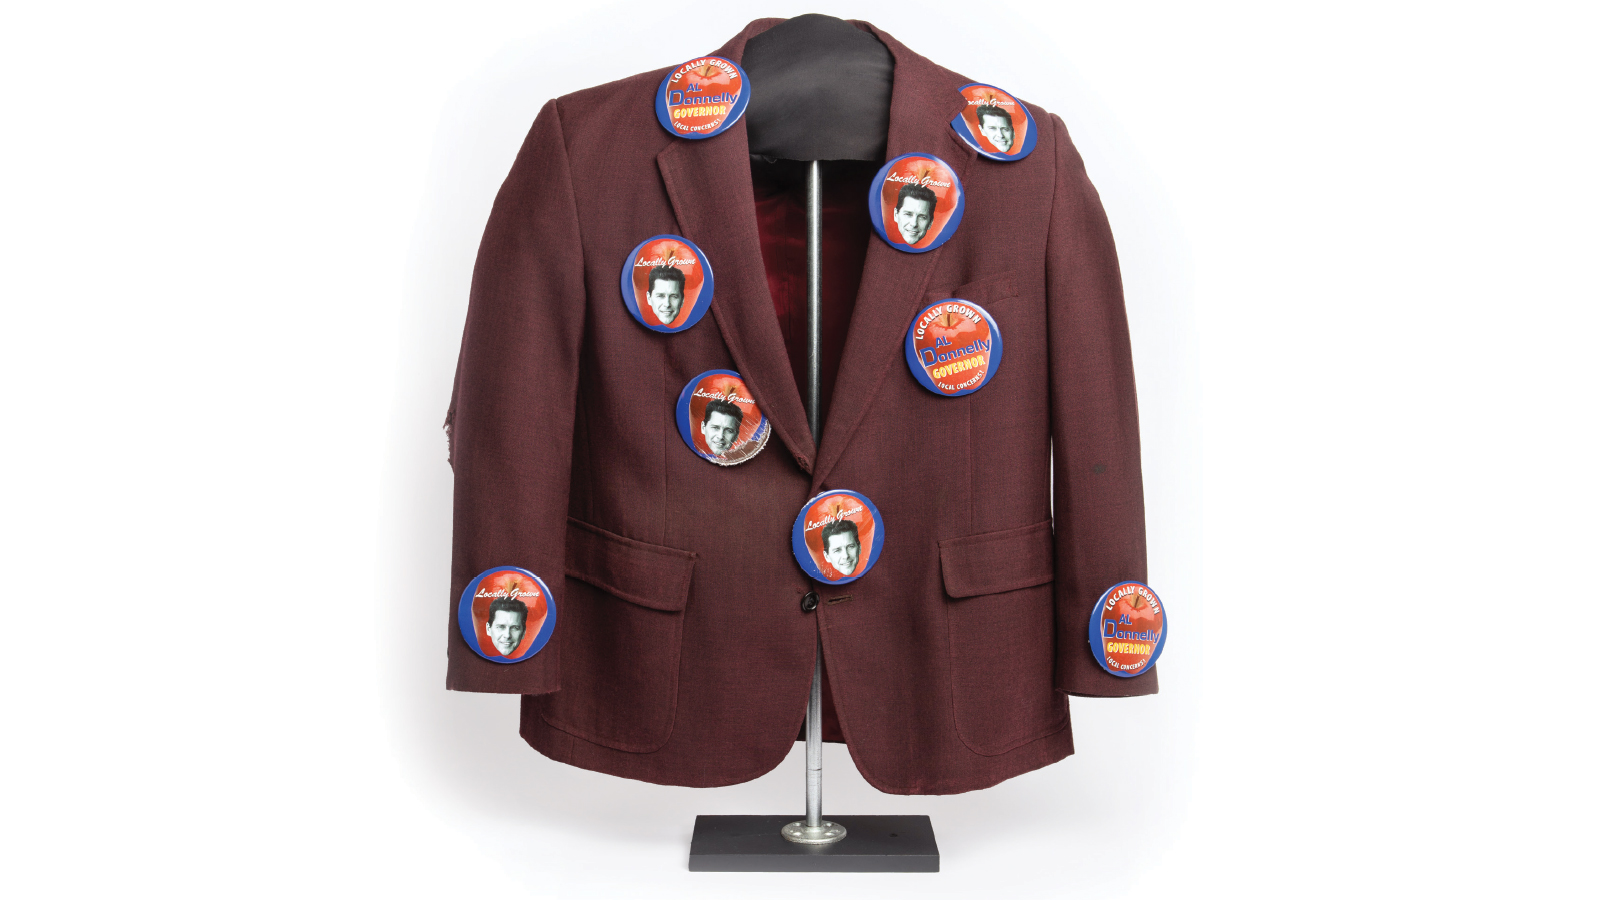 Chris Farley's jacket covered in buttons